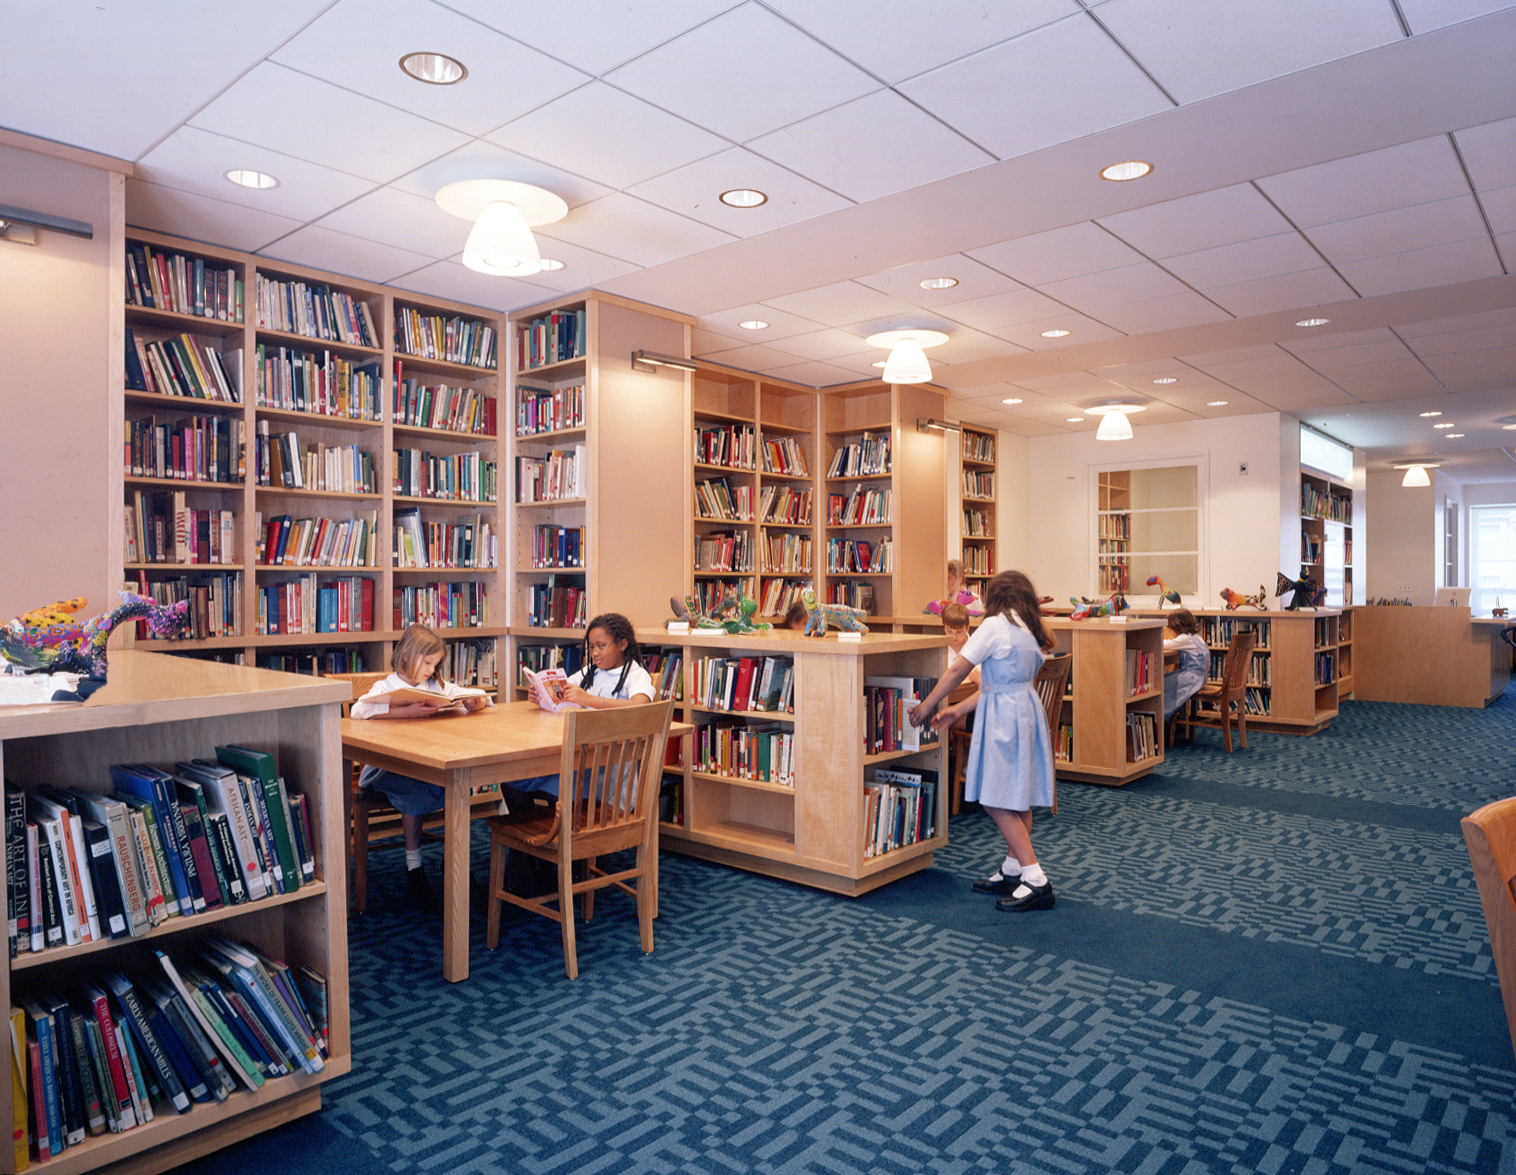 National Library Month: Showcasing the C.V. Starr Library and Learning Center